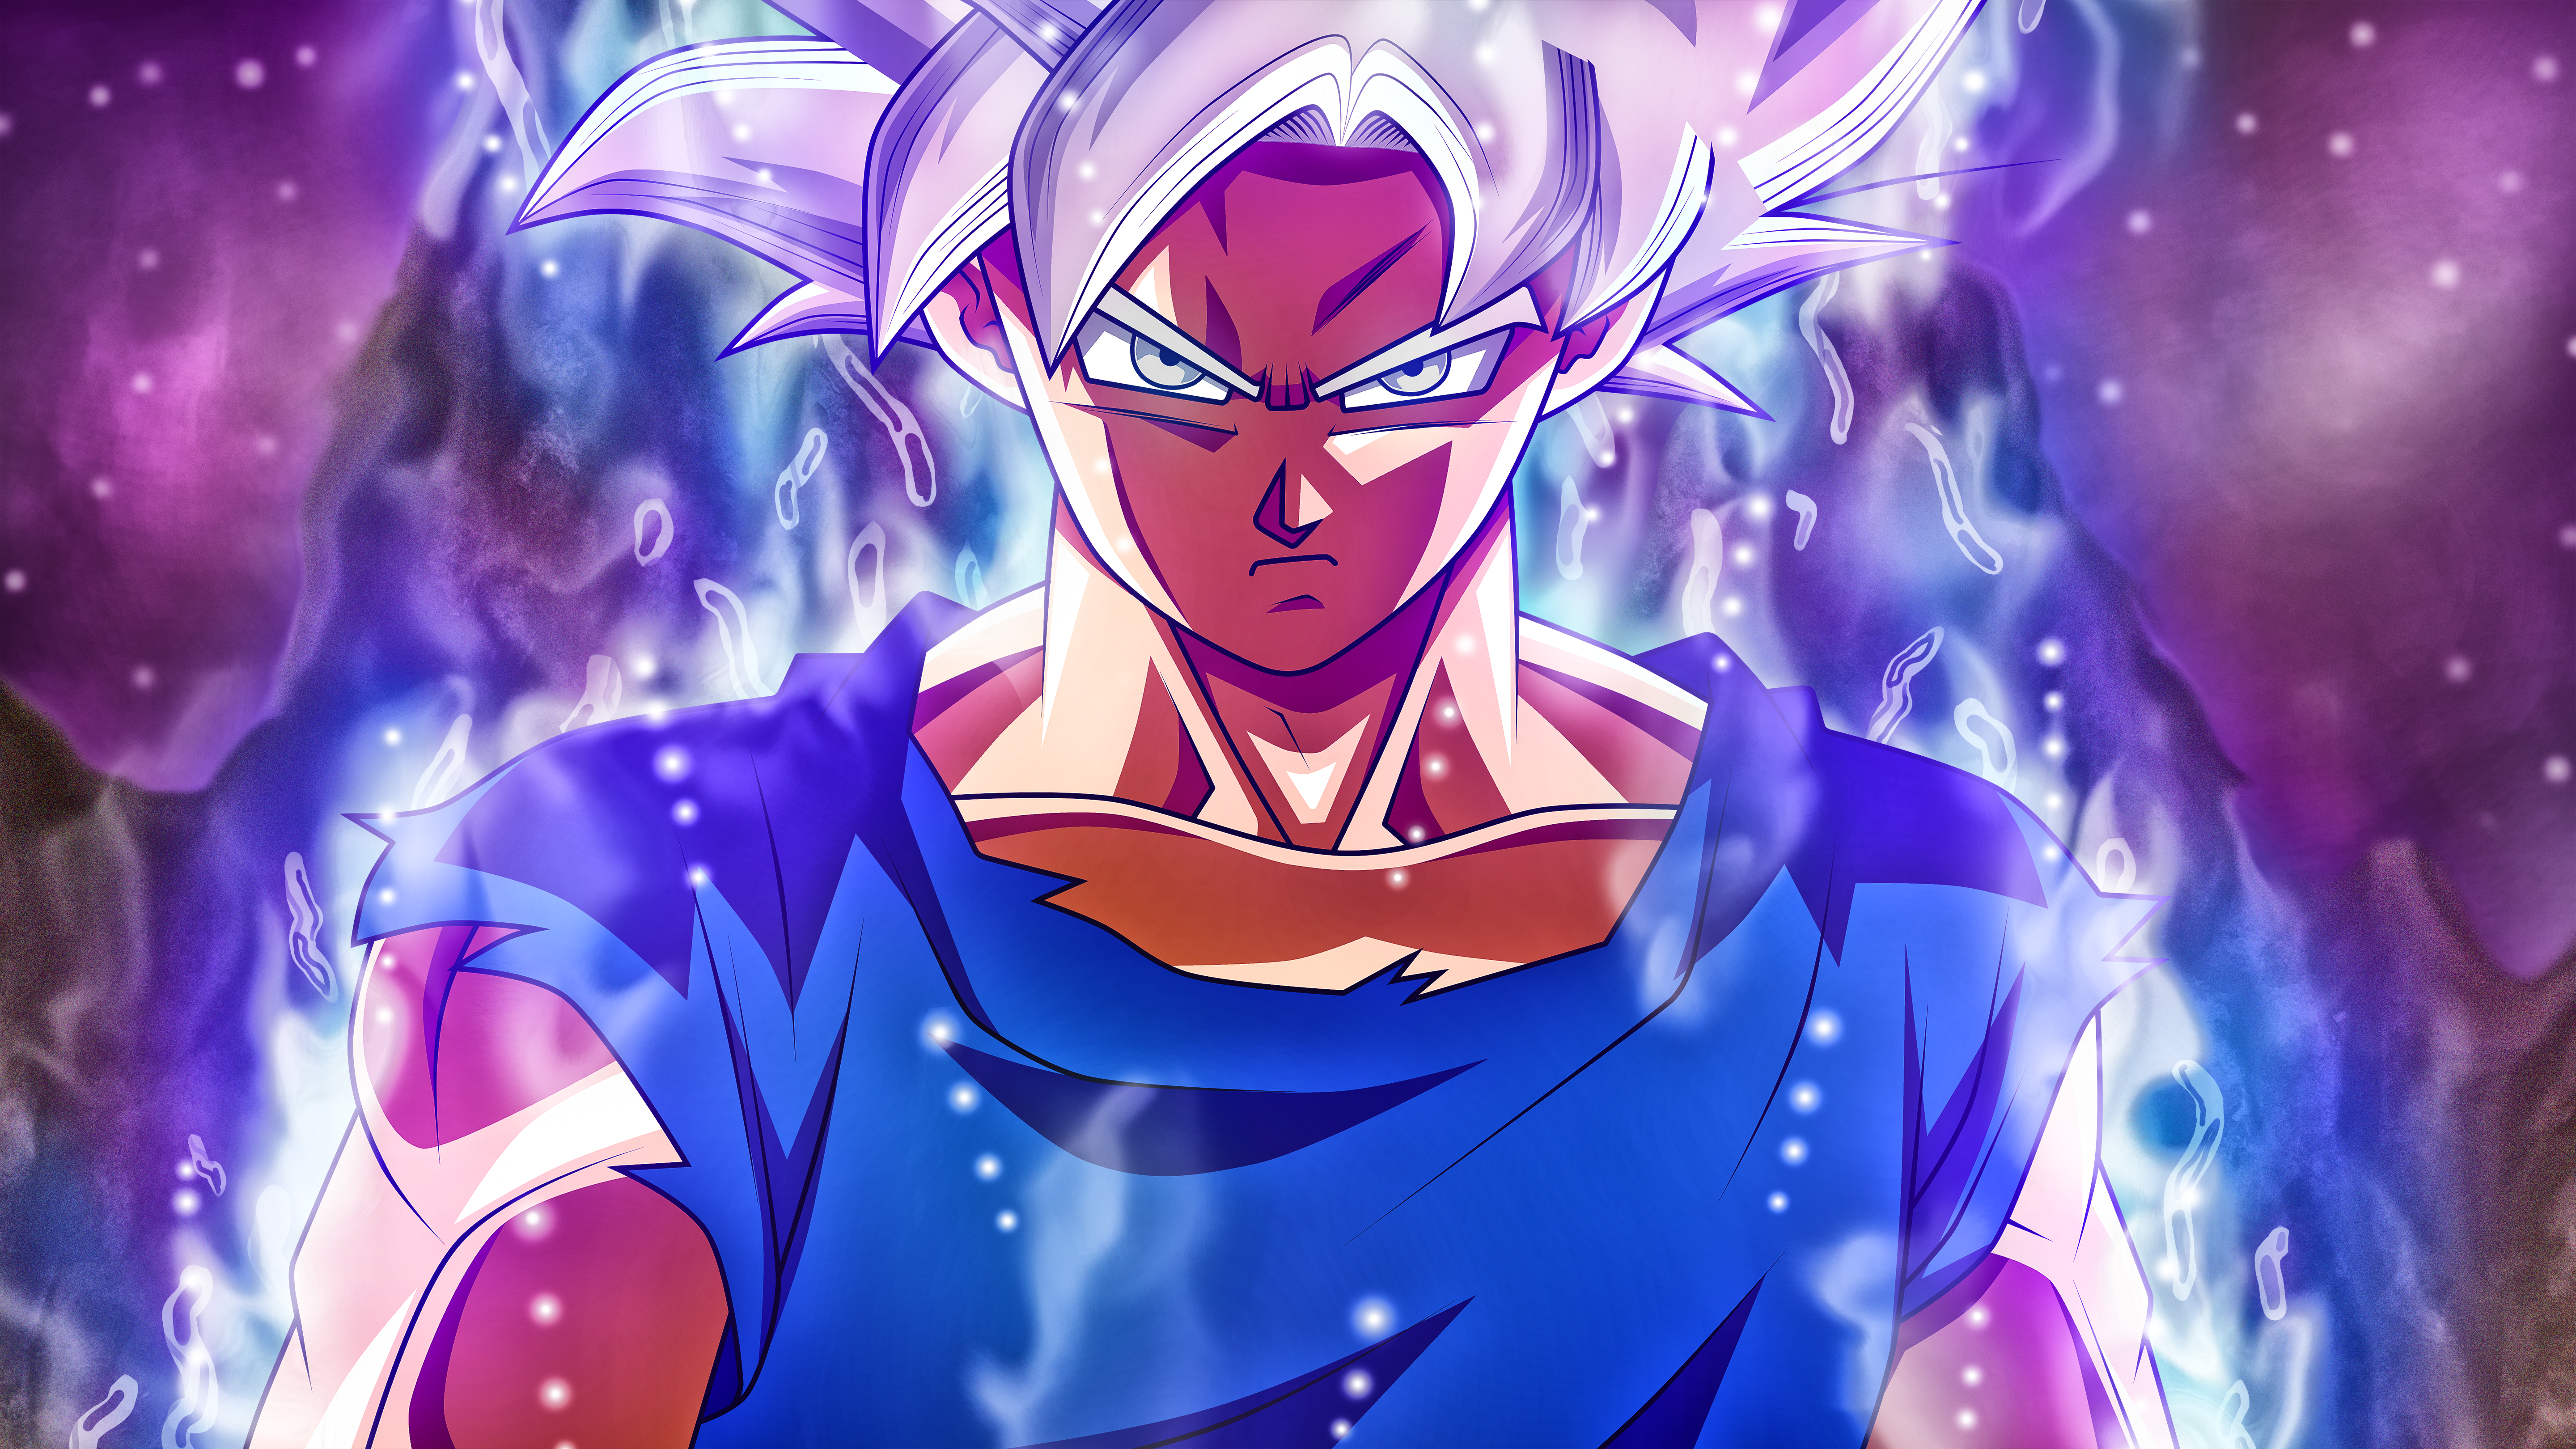 Wallpaper dragon ball ultra instinct